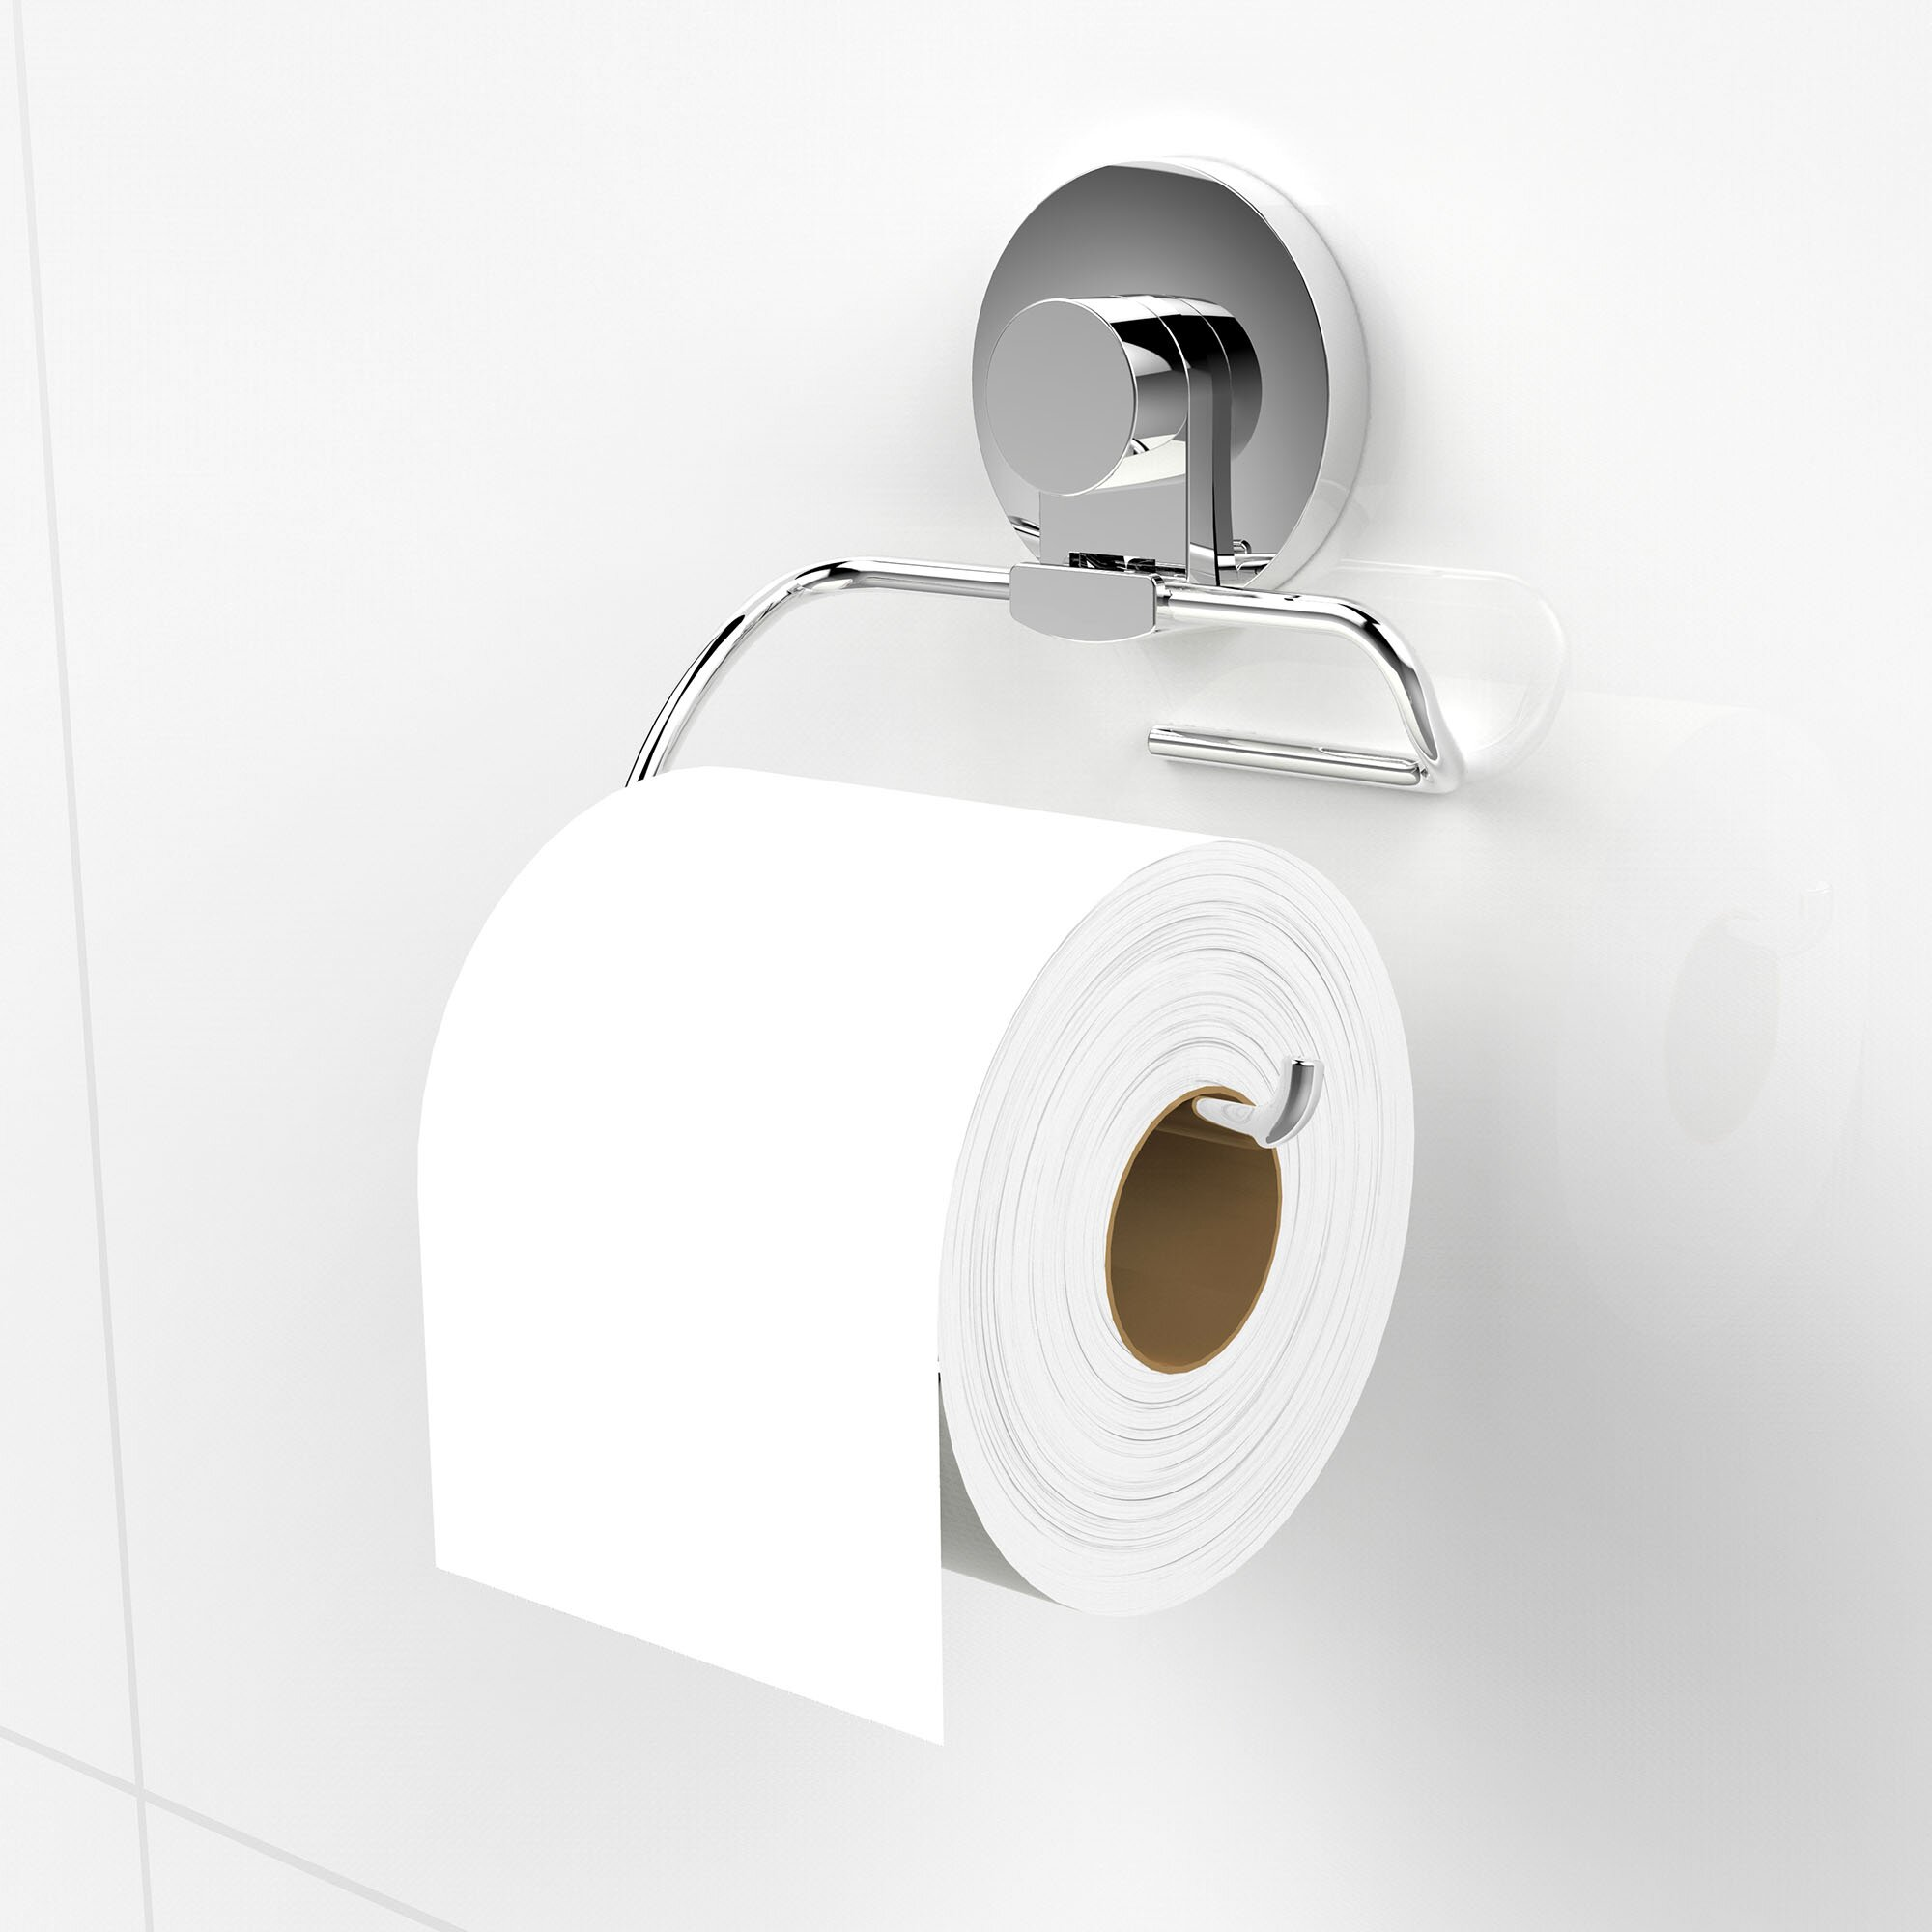 everloc xpressions wall mount toilet paper holder